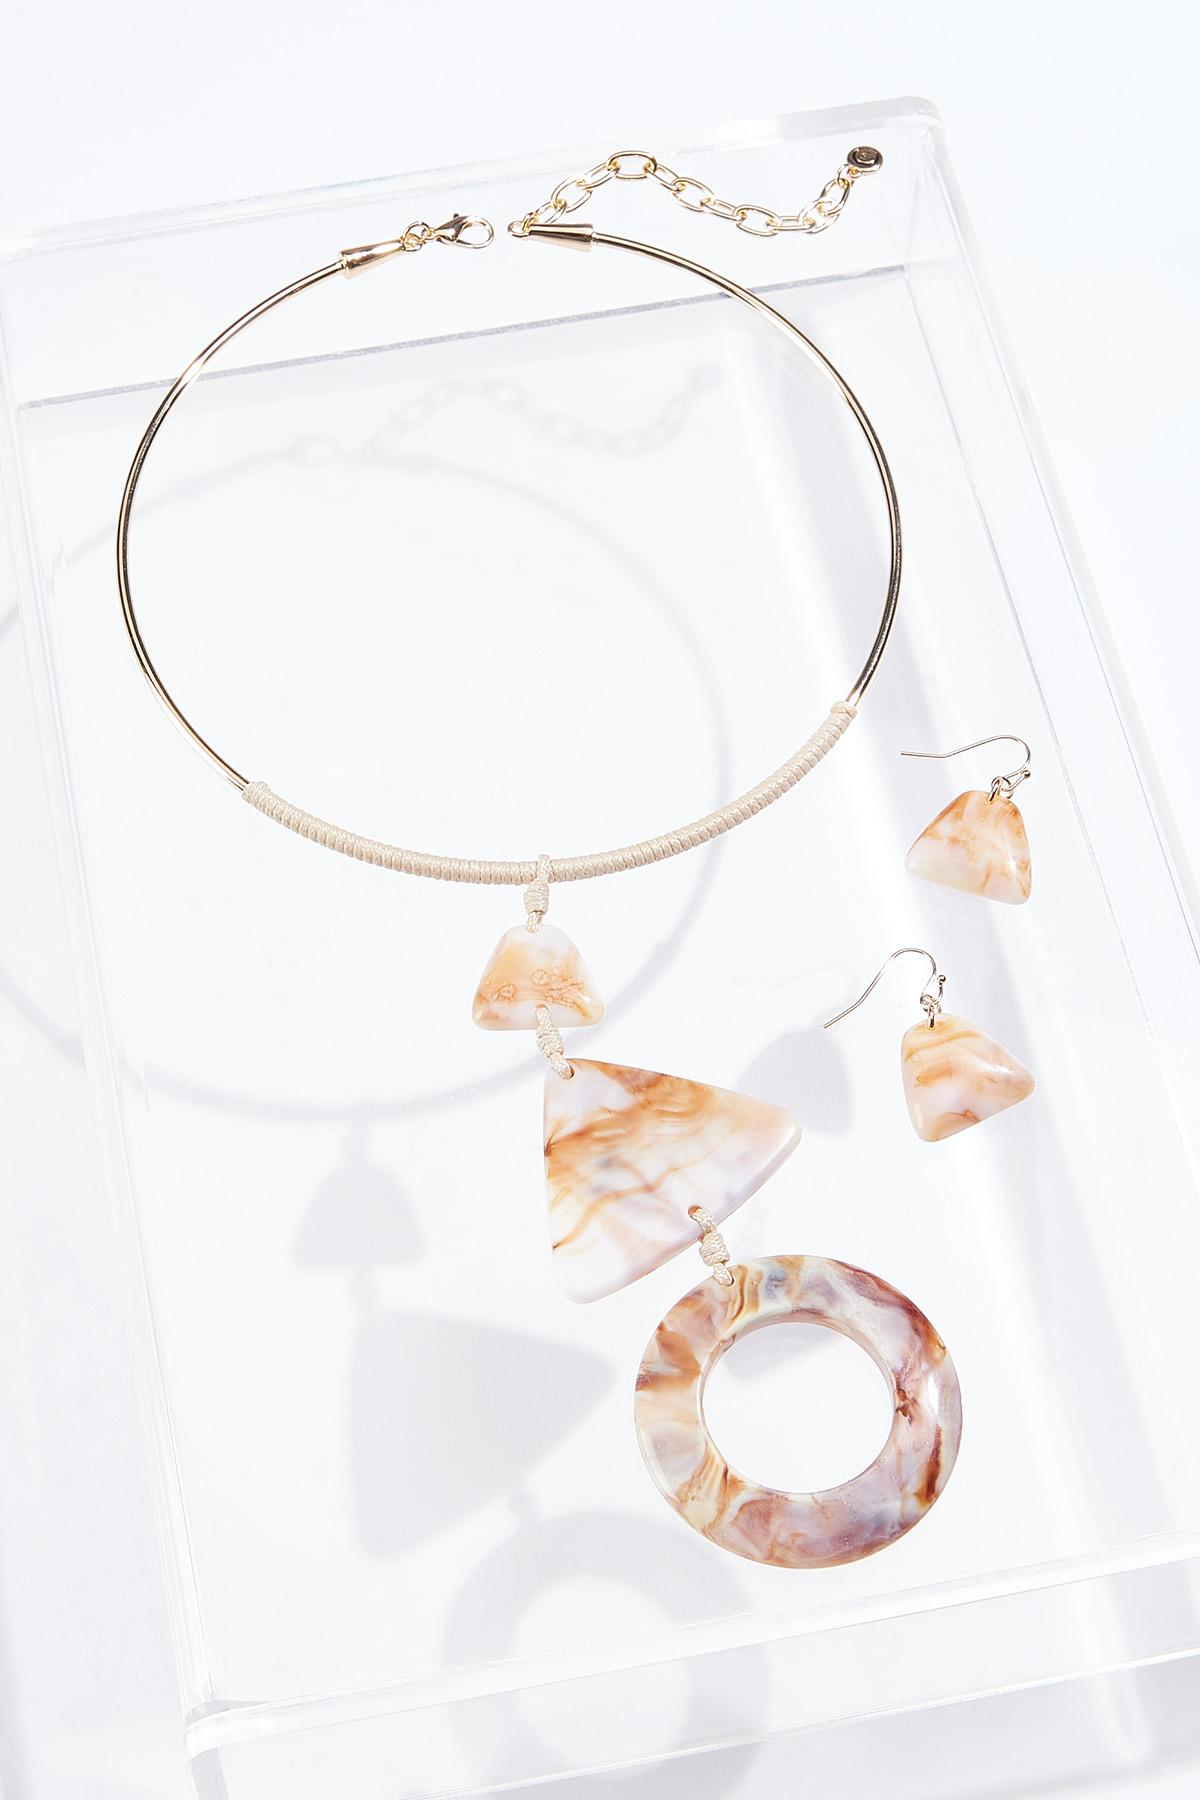 Natural Resin Wire Necklace